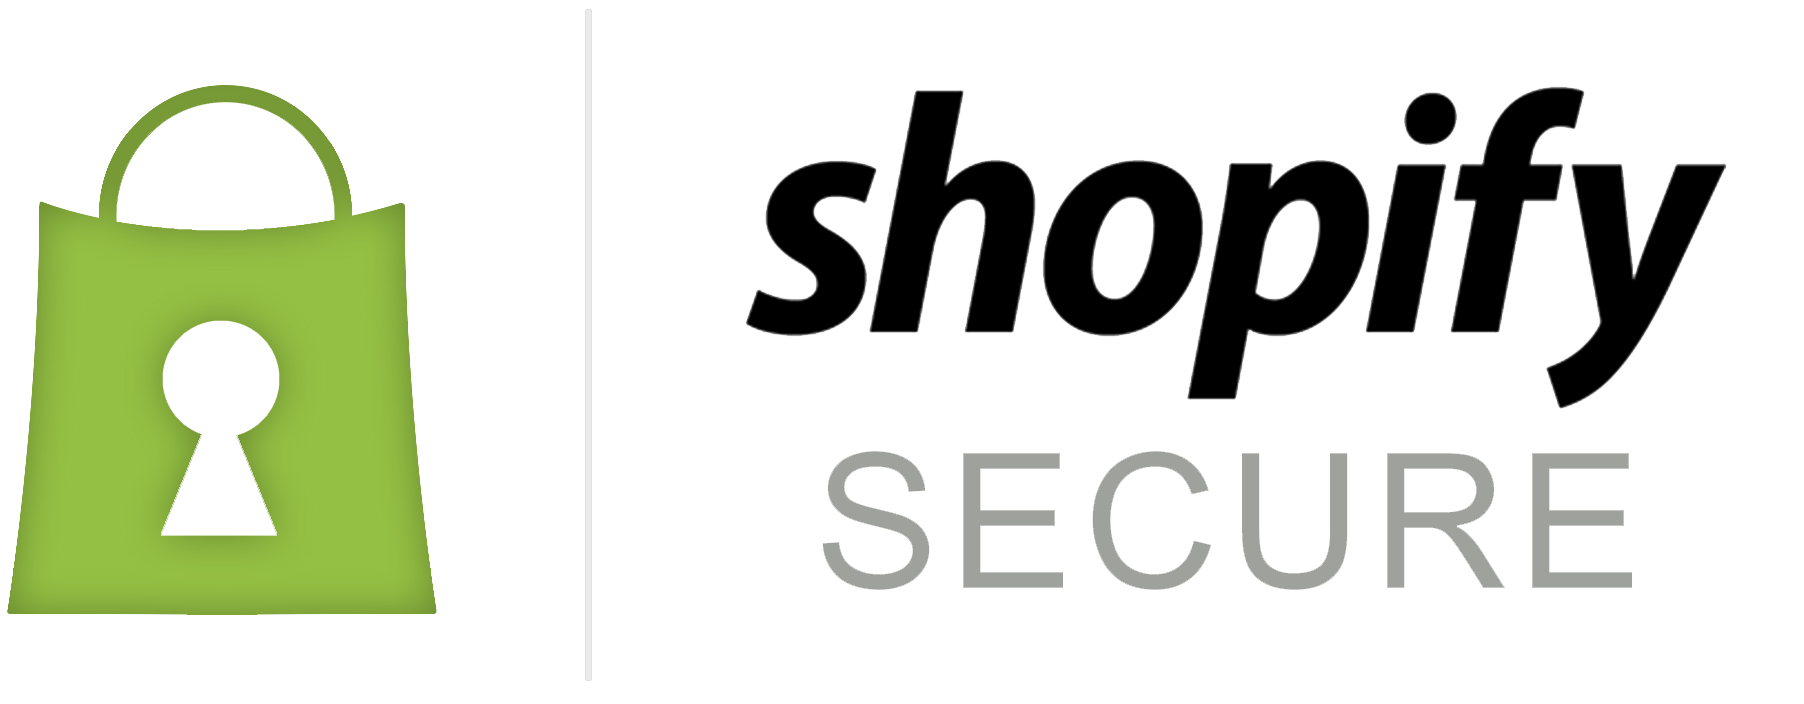 Shopify-secure-dark